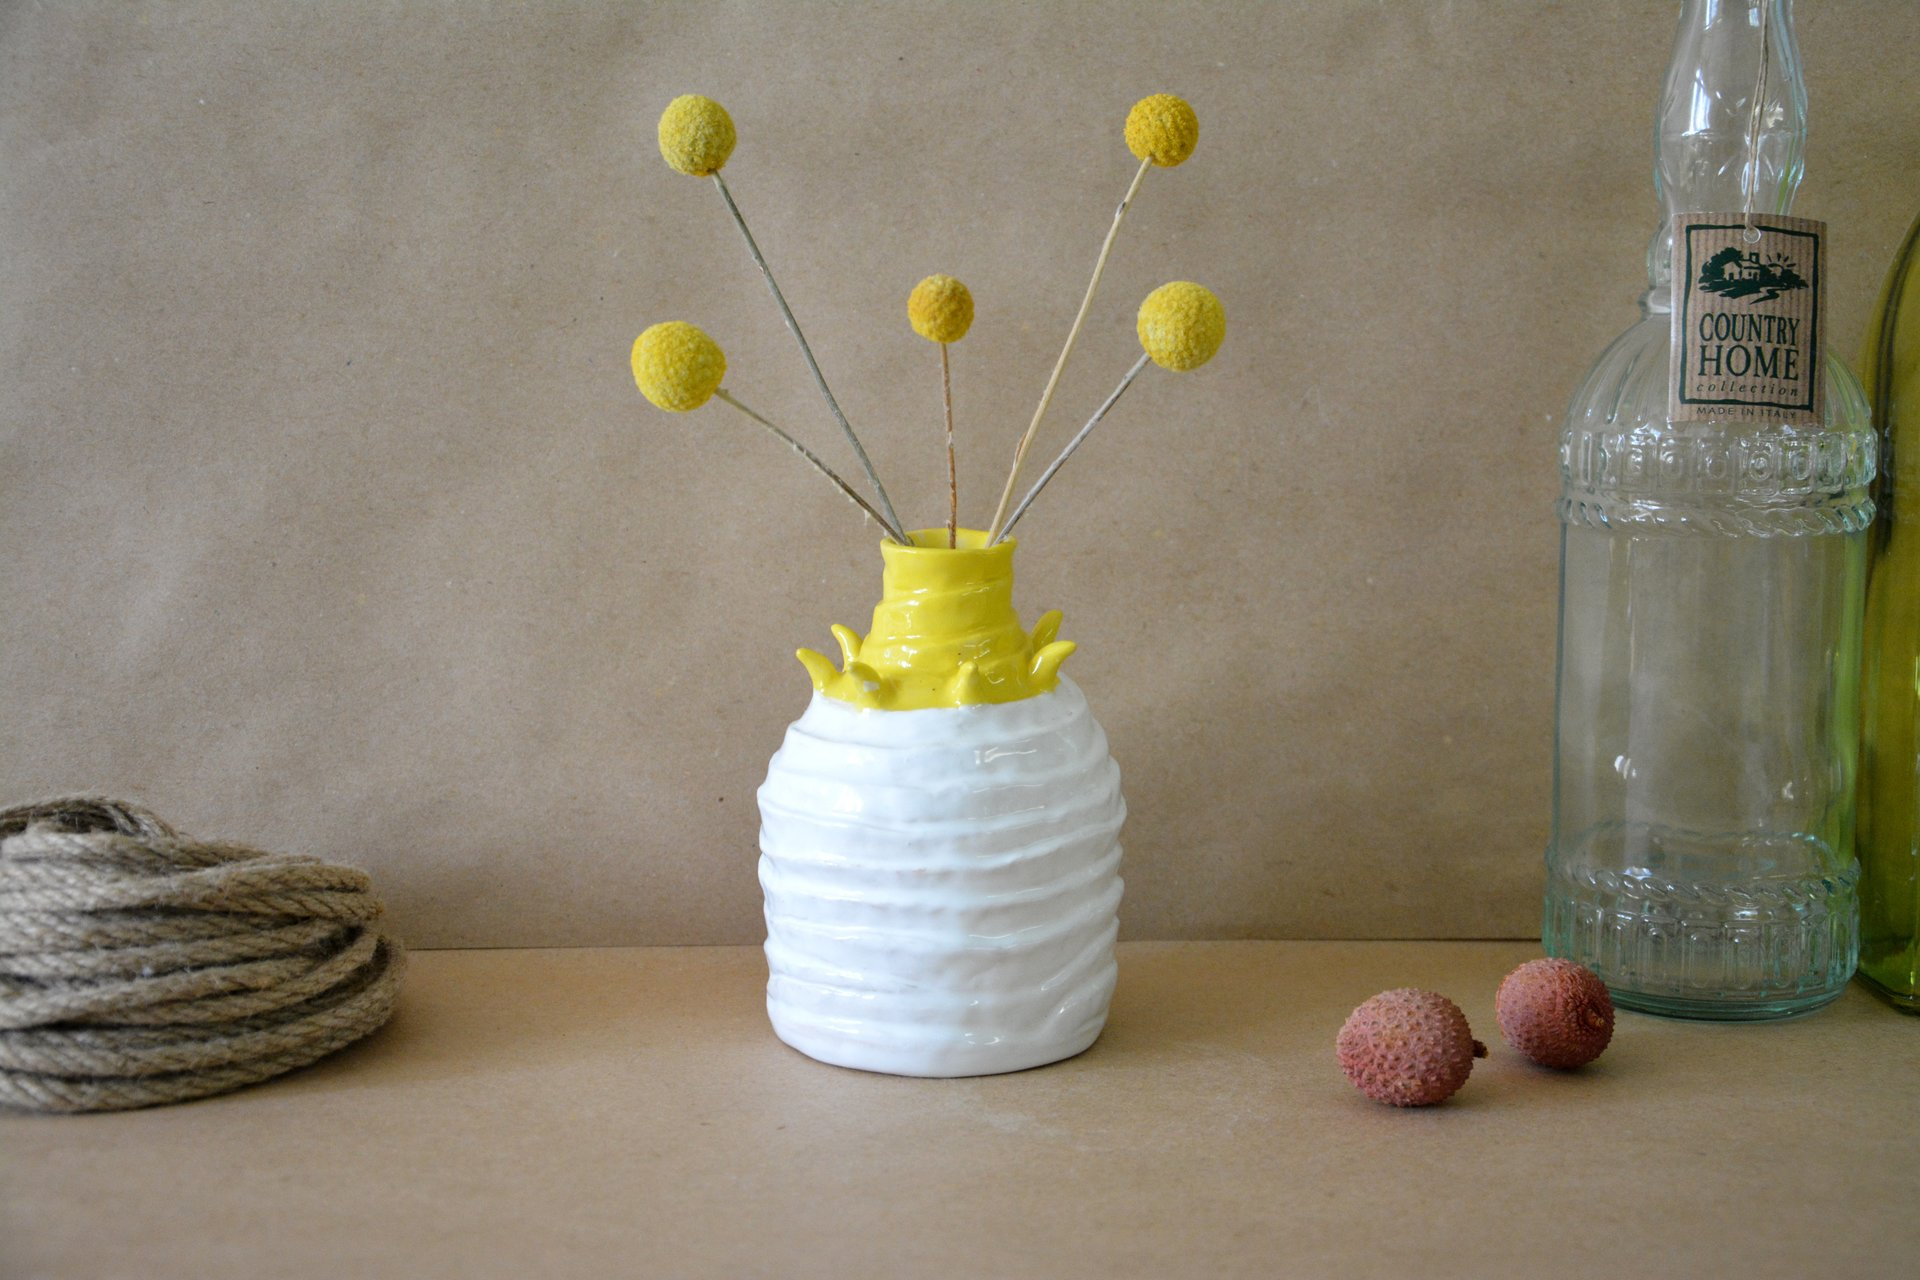 Decorative white-yellow vase Tourniquets, height - 13,5 cm, photo 4 of 7. 604.